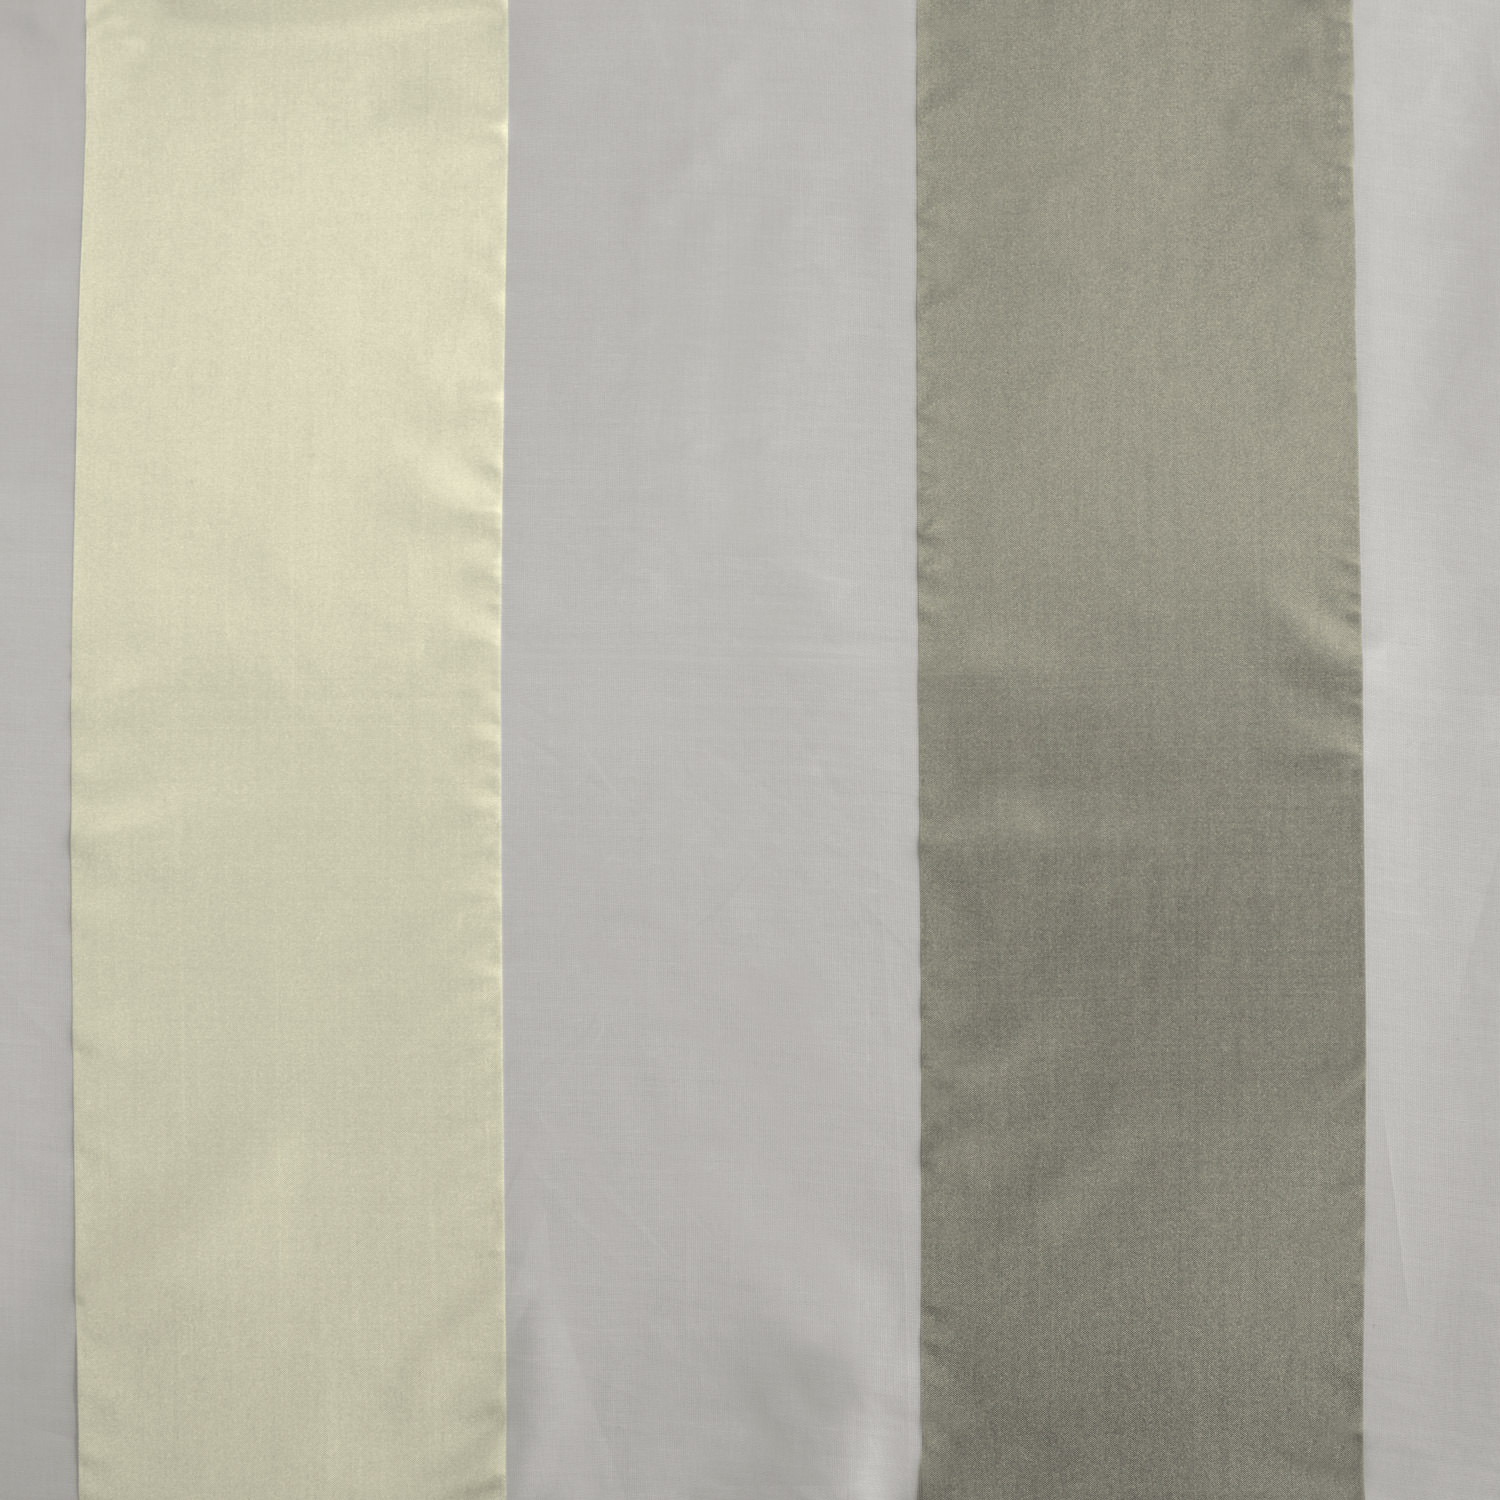 Laquered Silver & White Organza Vertical Stripe Sheer Swatch